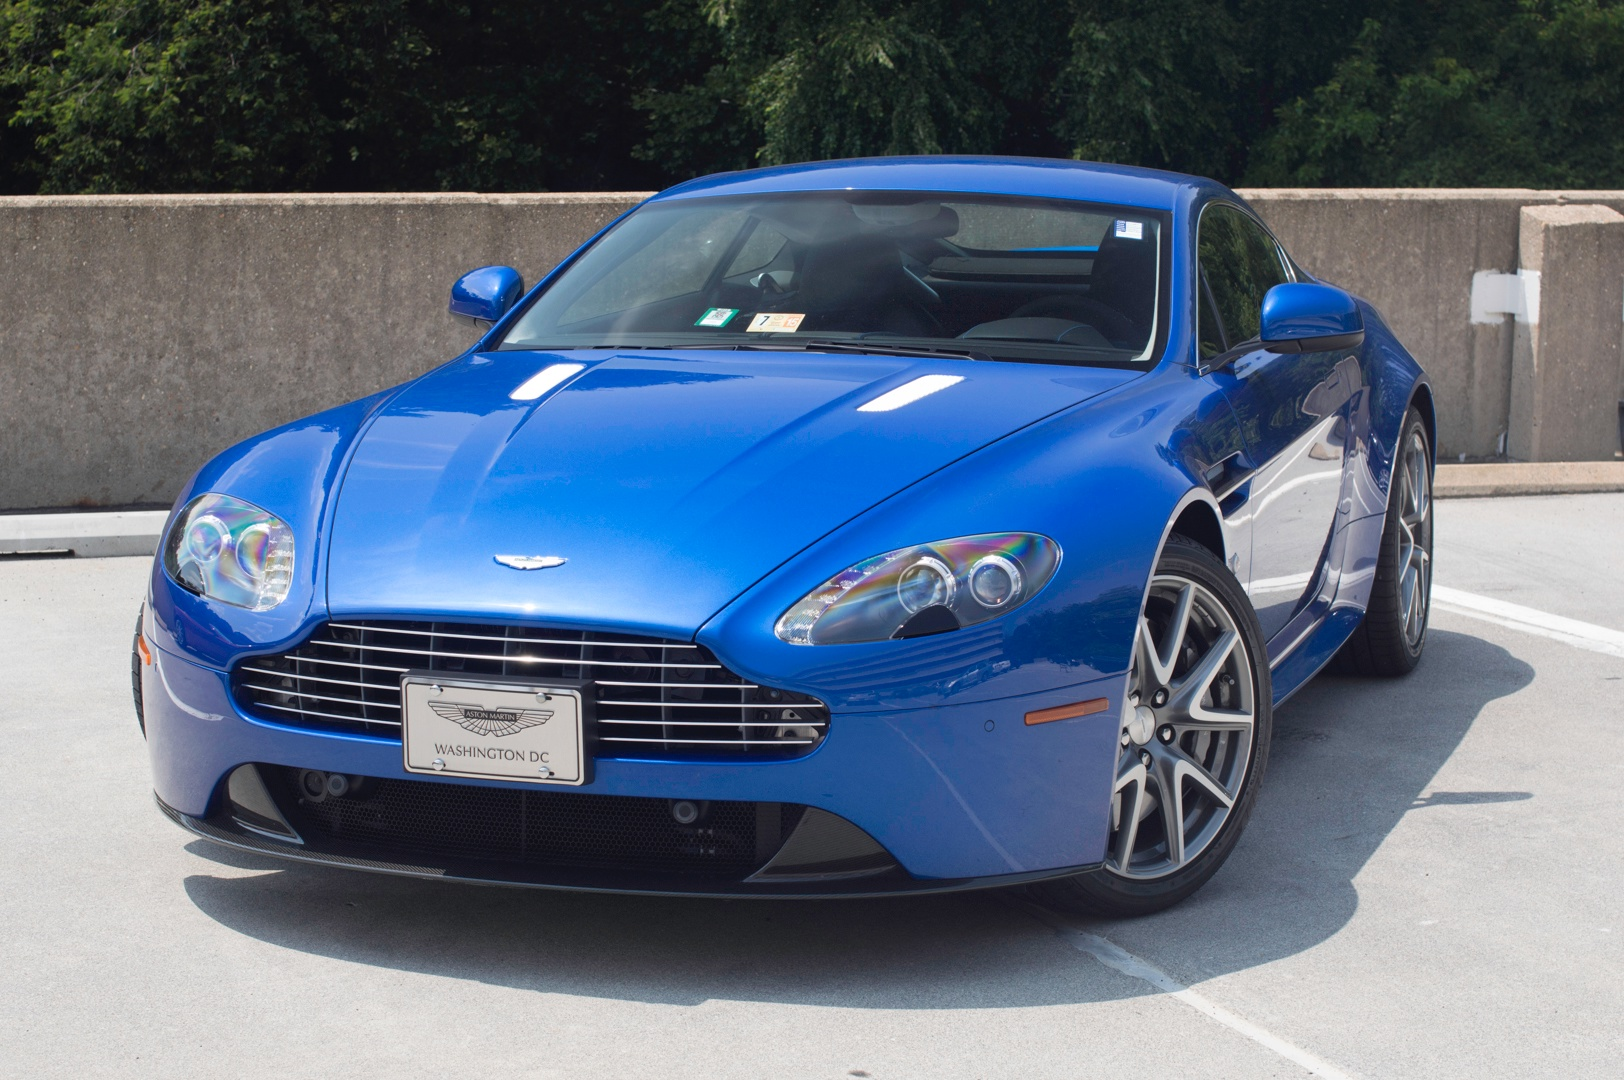 2012 aston martin v8 vantage s stock pc17071 for sale near vienna va va aston martin dealer. Black Bedroom Furniture Sets. Home Design Ideas